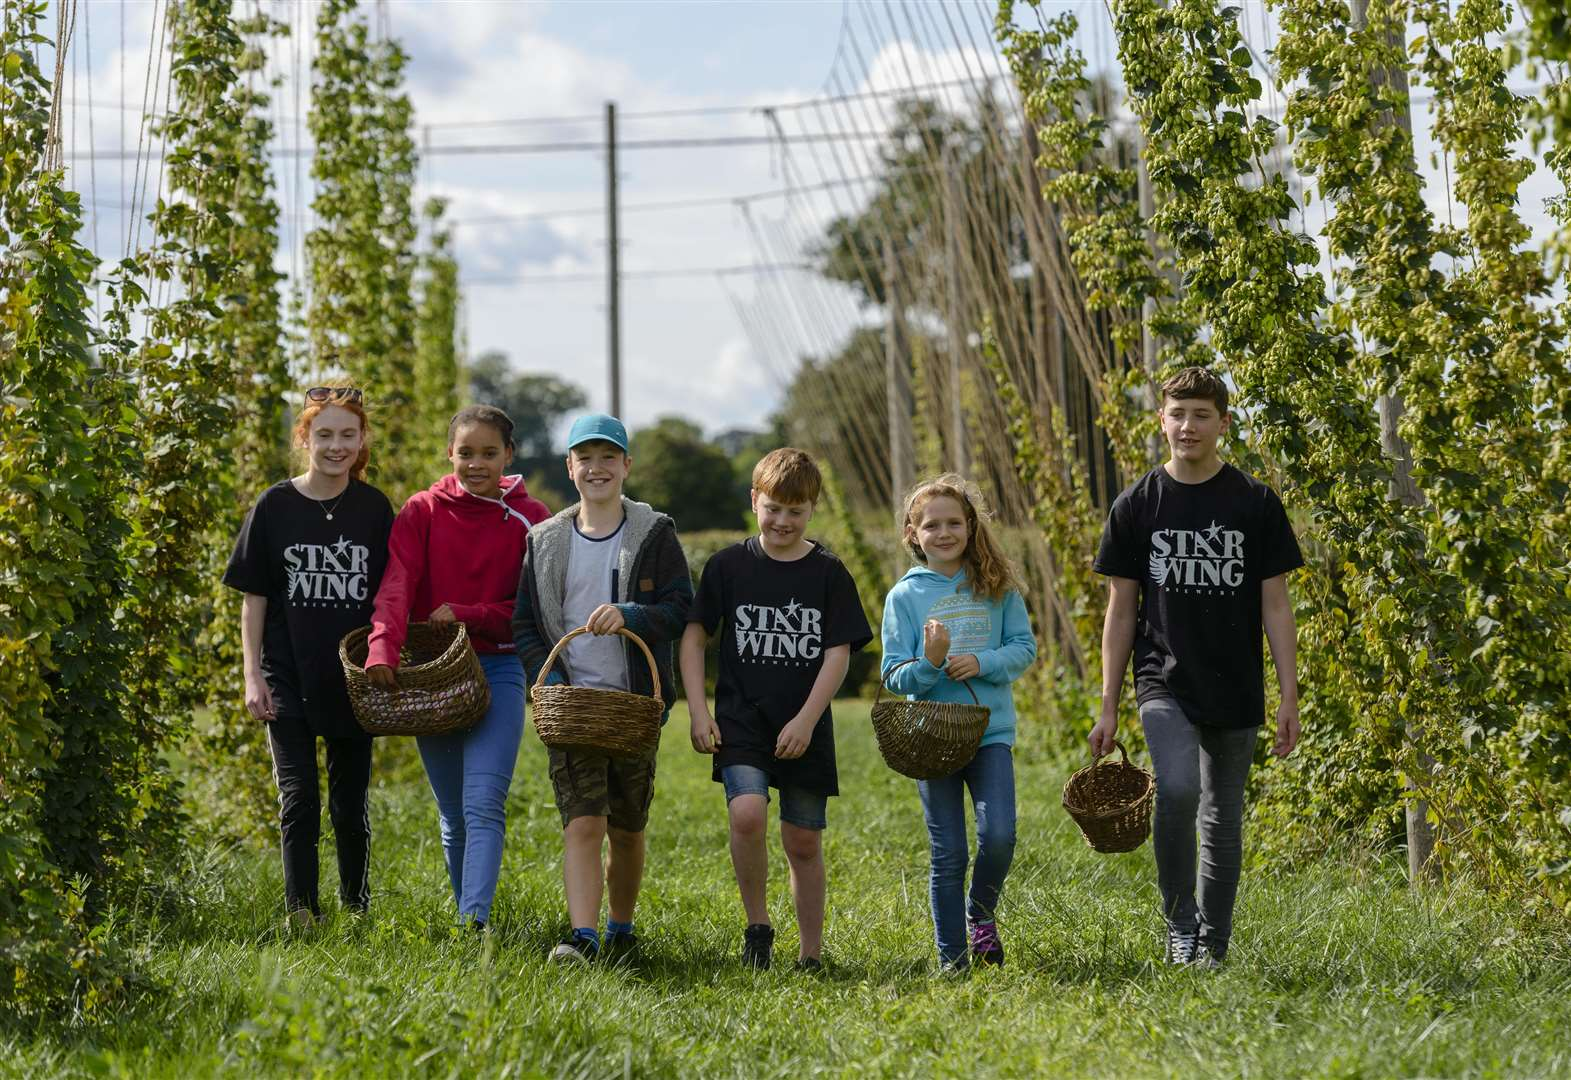 Hop-picking event at Redgrave's Star Wing Brewery